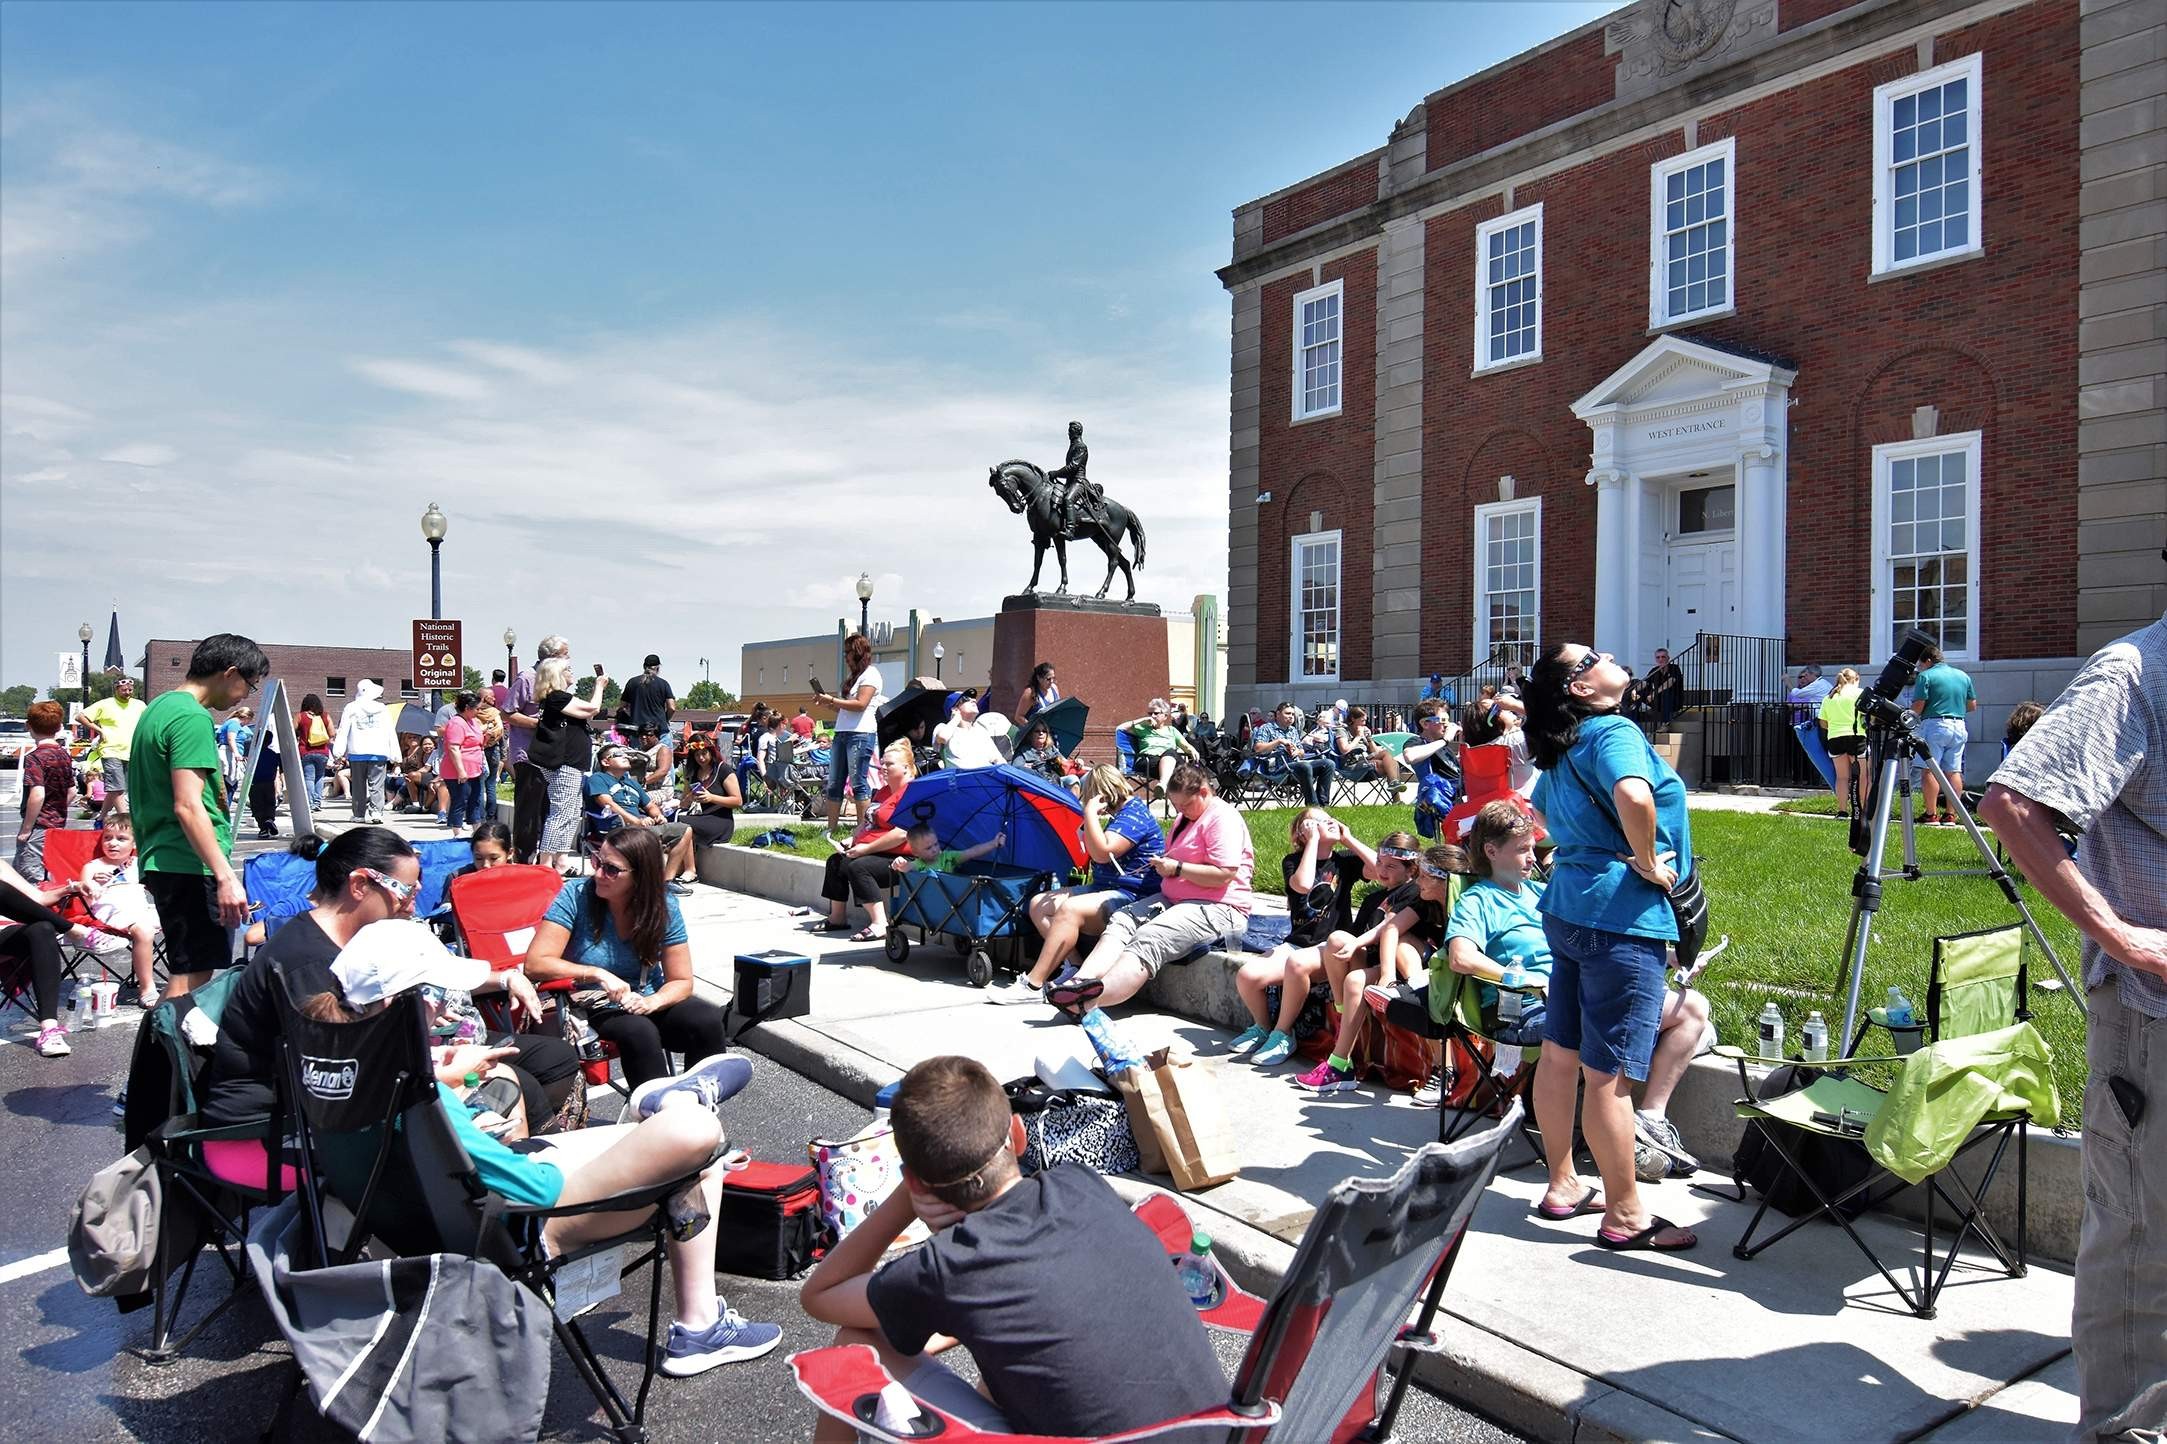 Crowds begin to form at Independence Square as the skies clear prior to the start of the eclipse. [David M. Rainey/Special to The Examiner]